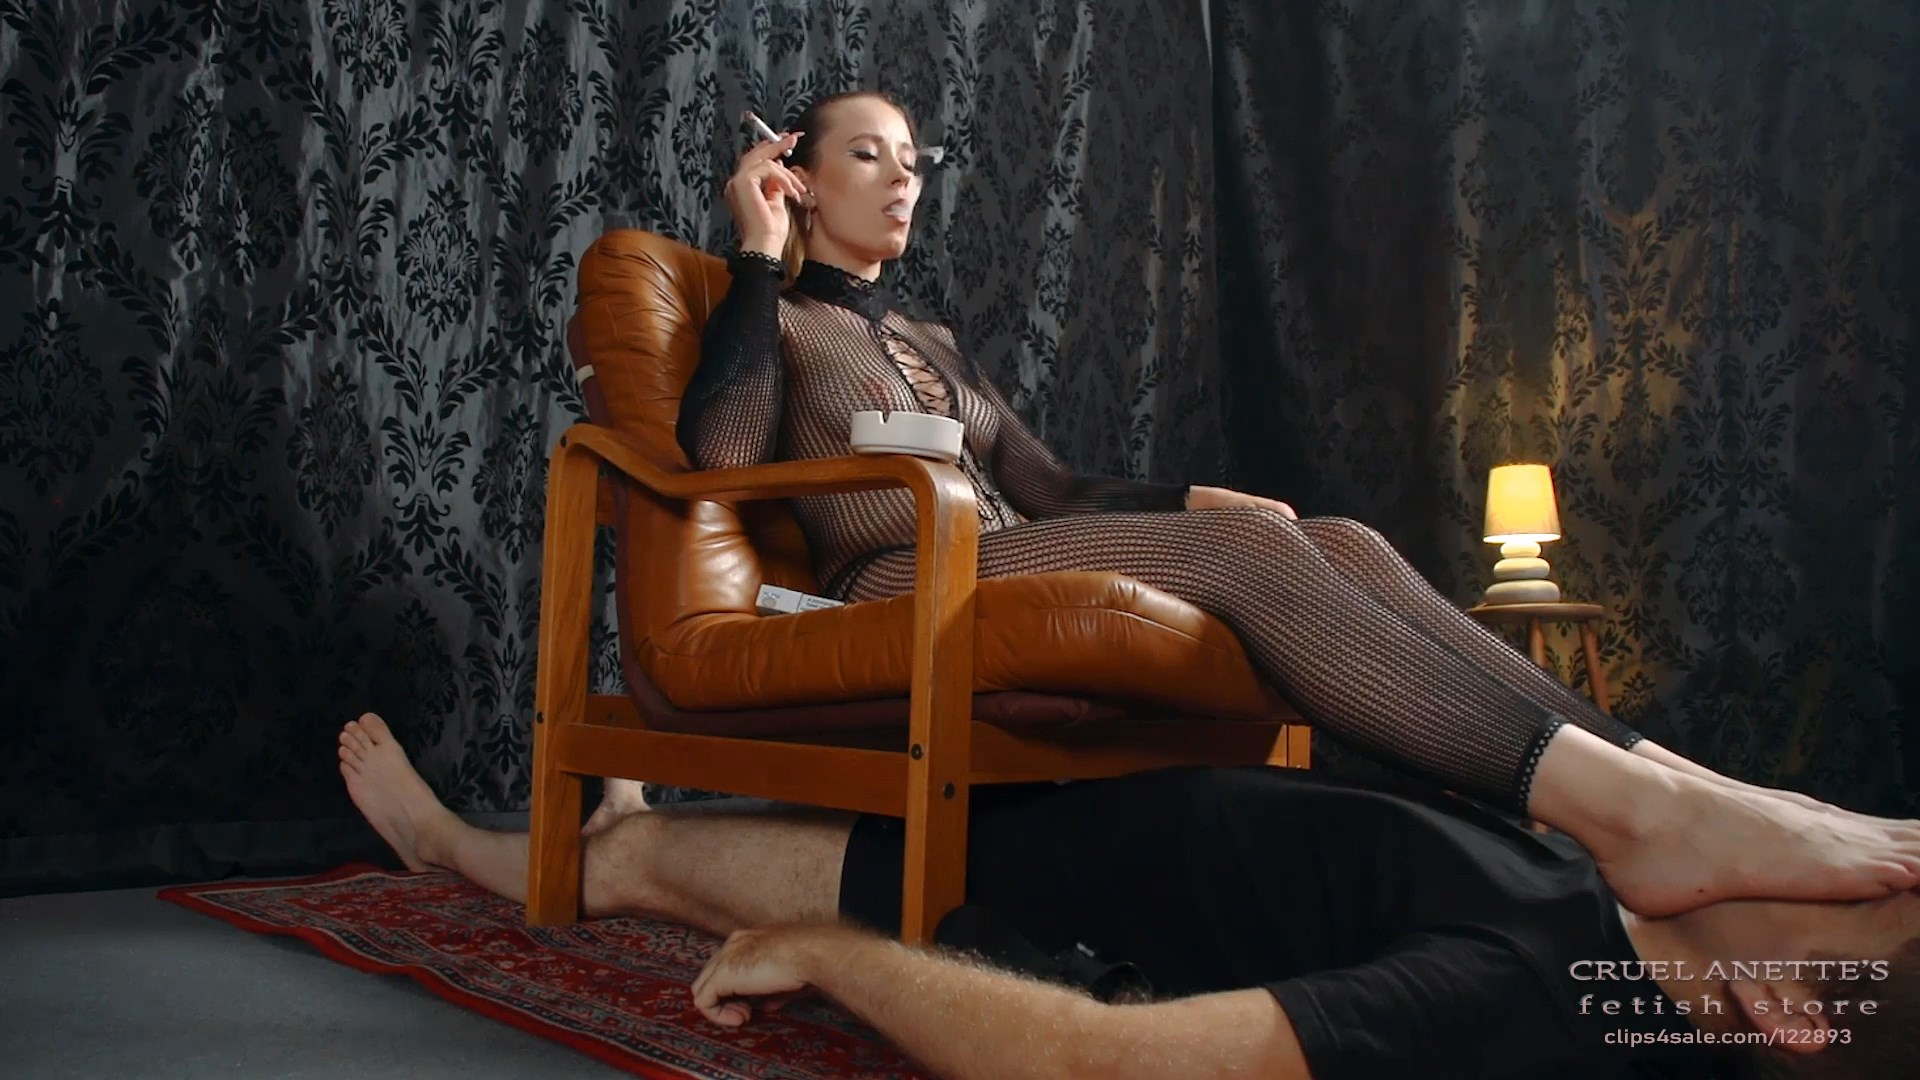 Smoking in chair - CRUEL ANETTES FETISH STORE - FULL HD/1080p/MP4